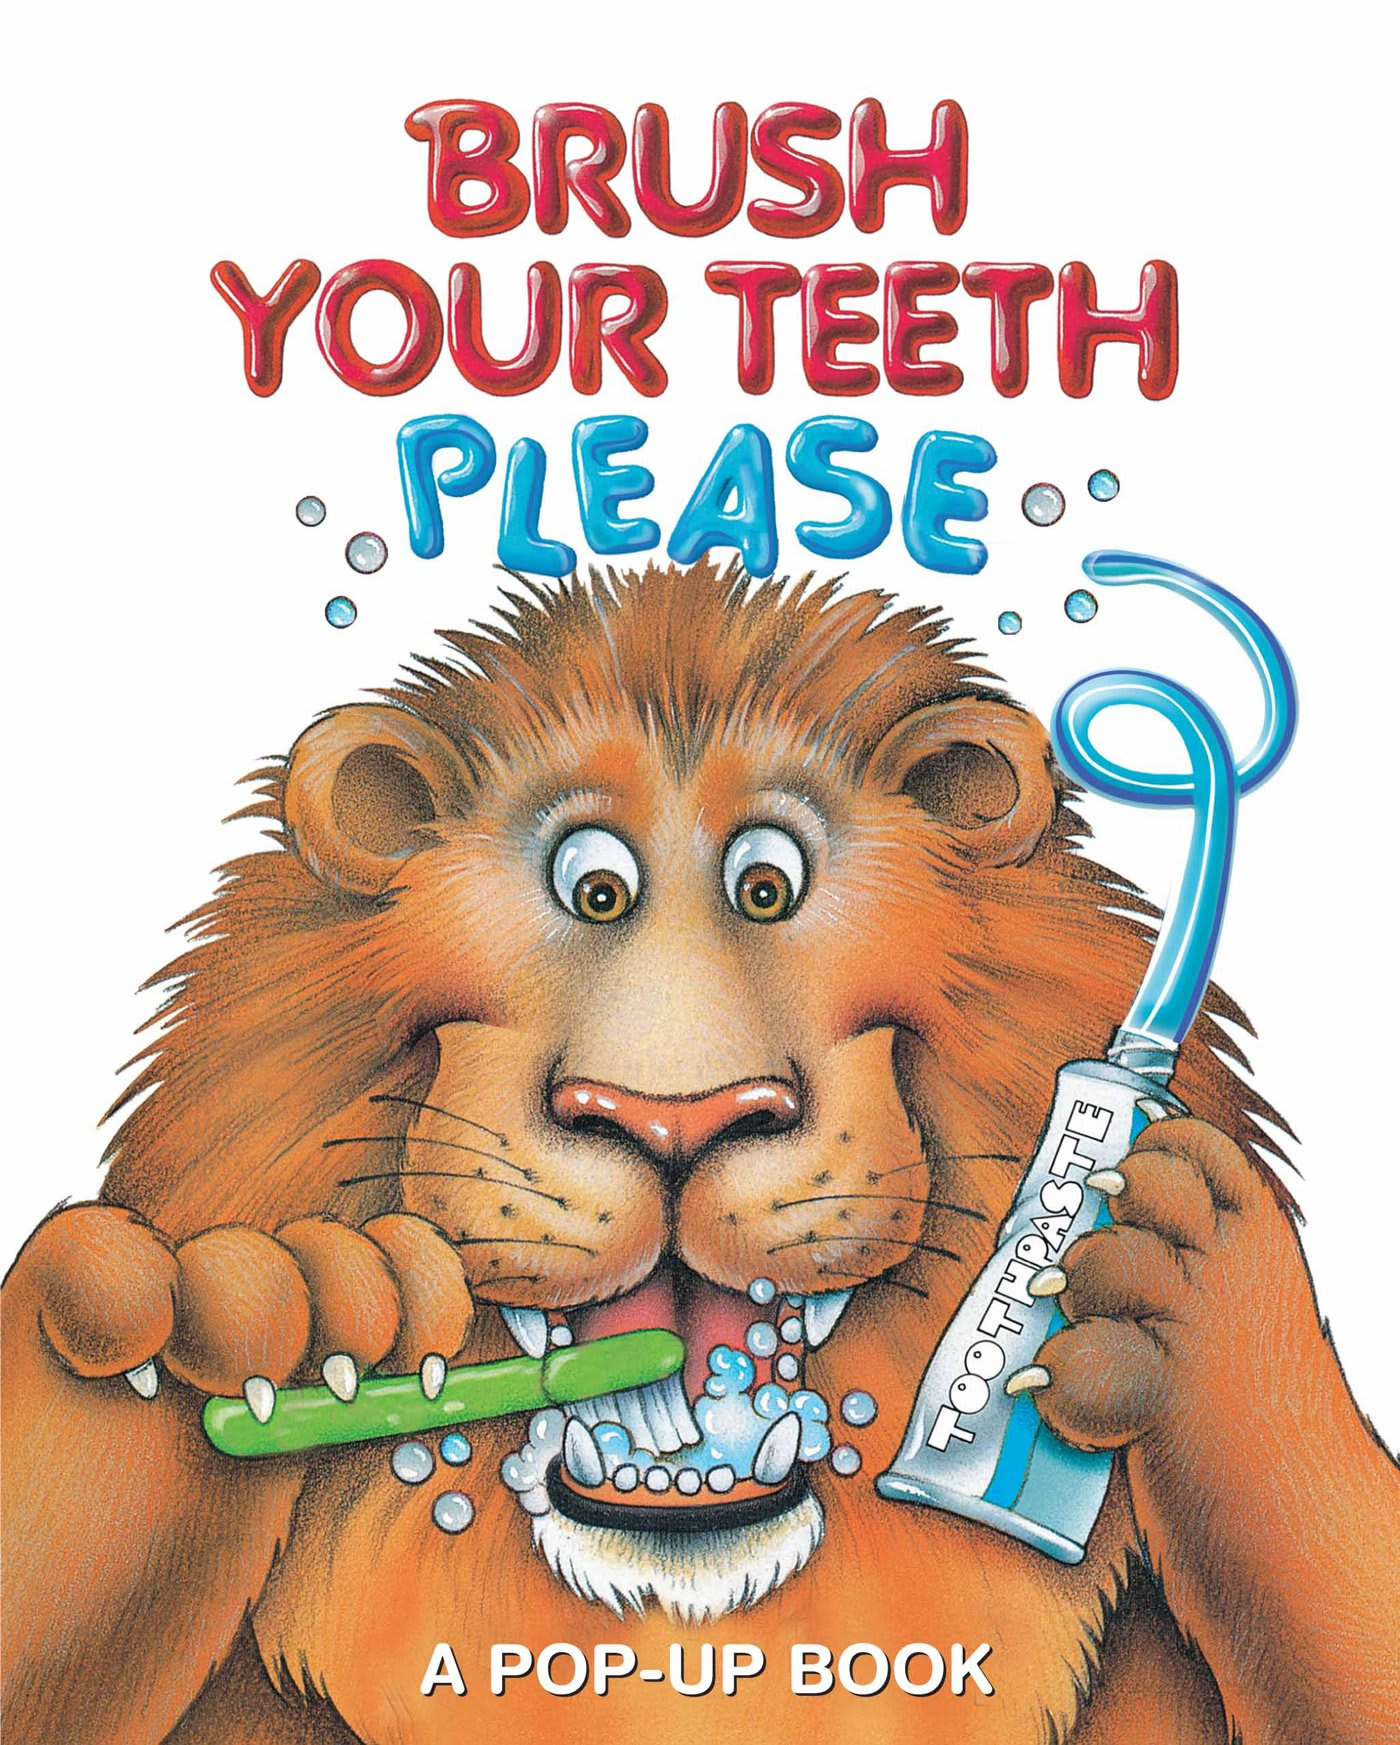 Brush Your Teeth Please, Pop-up dental health book for kids